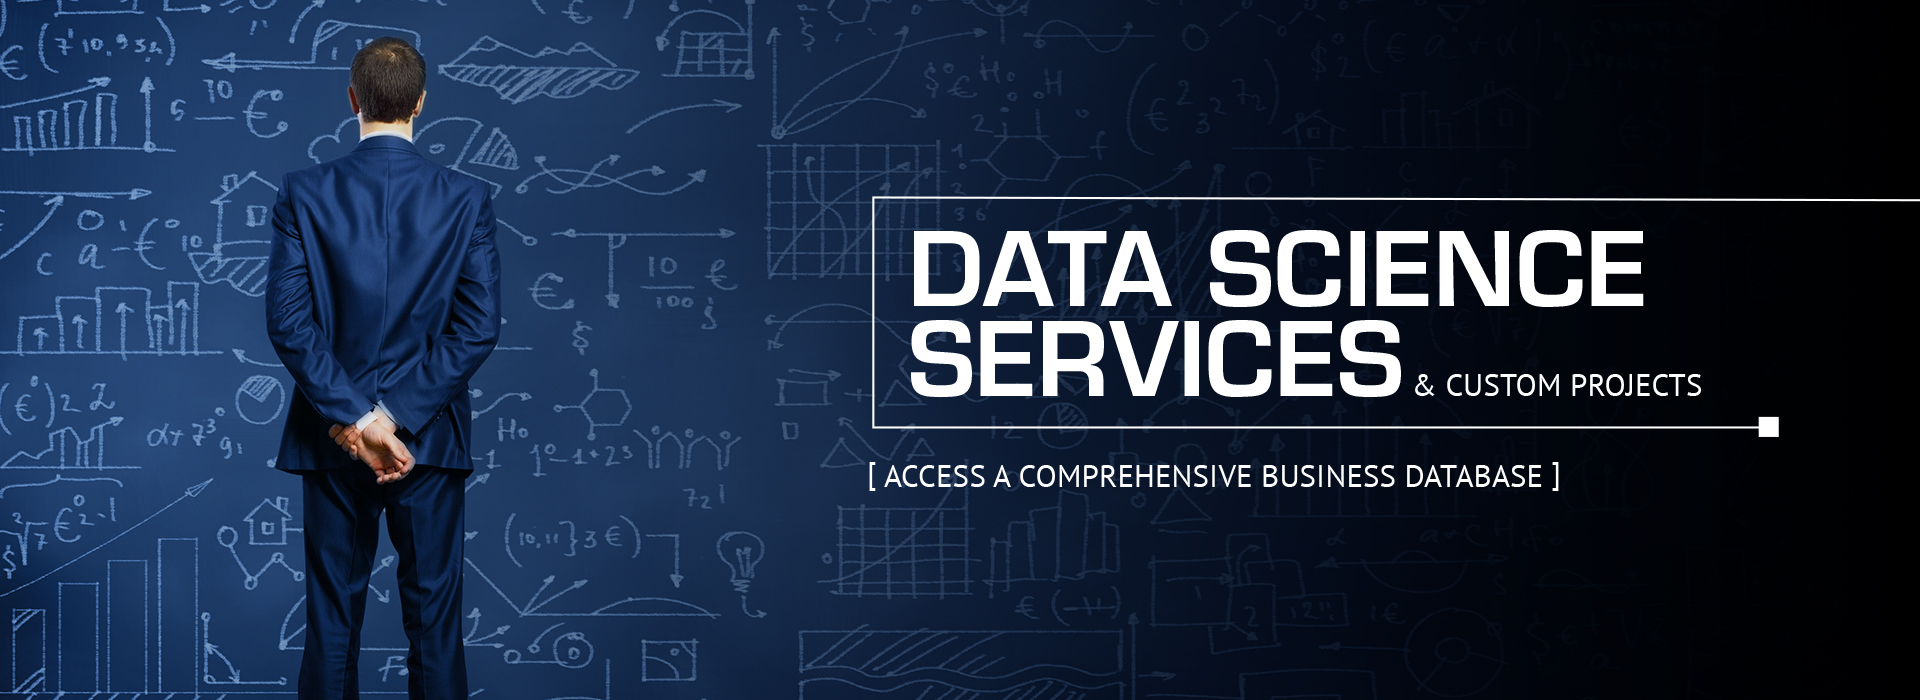 Data Science Services